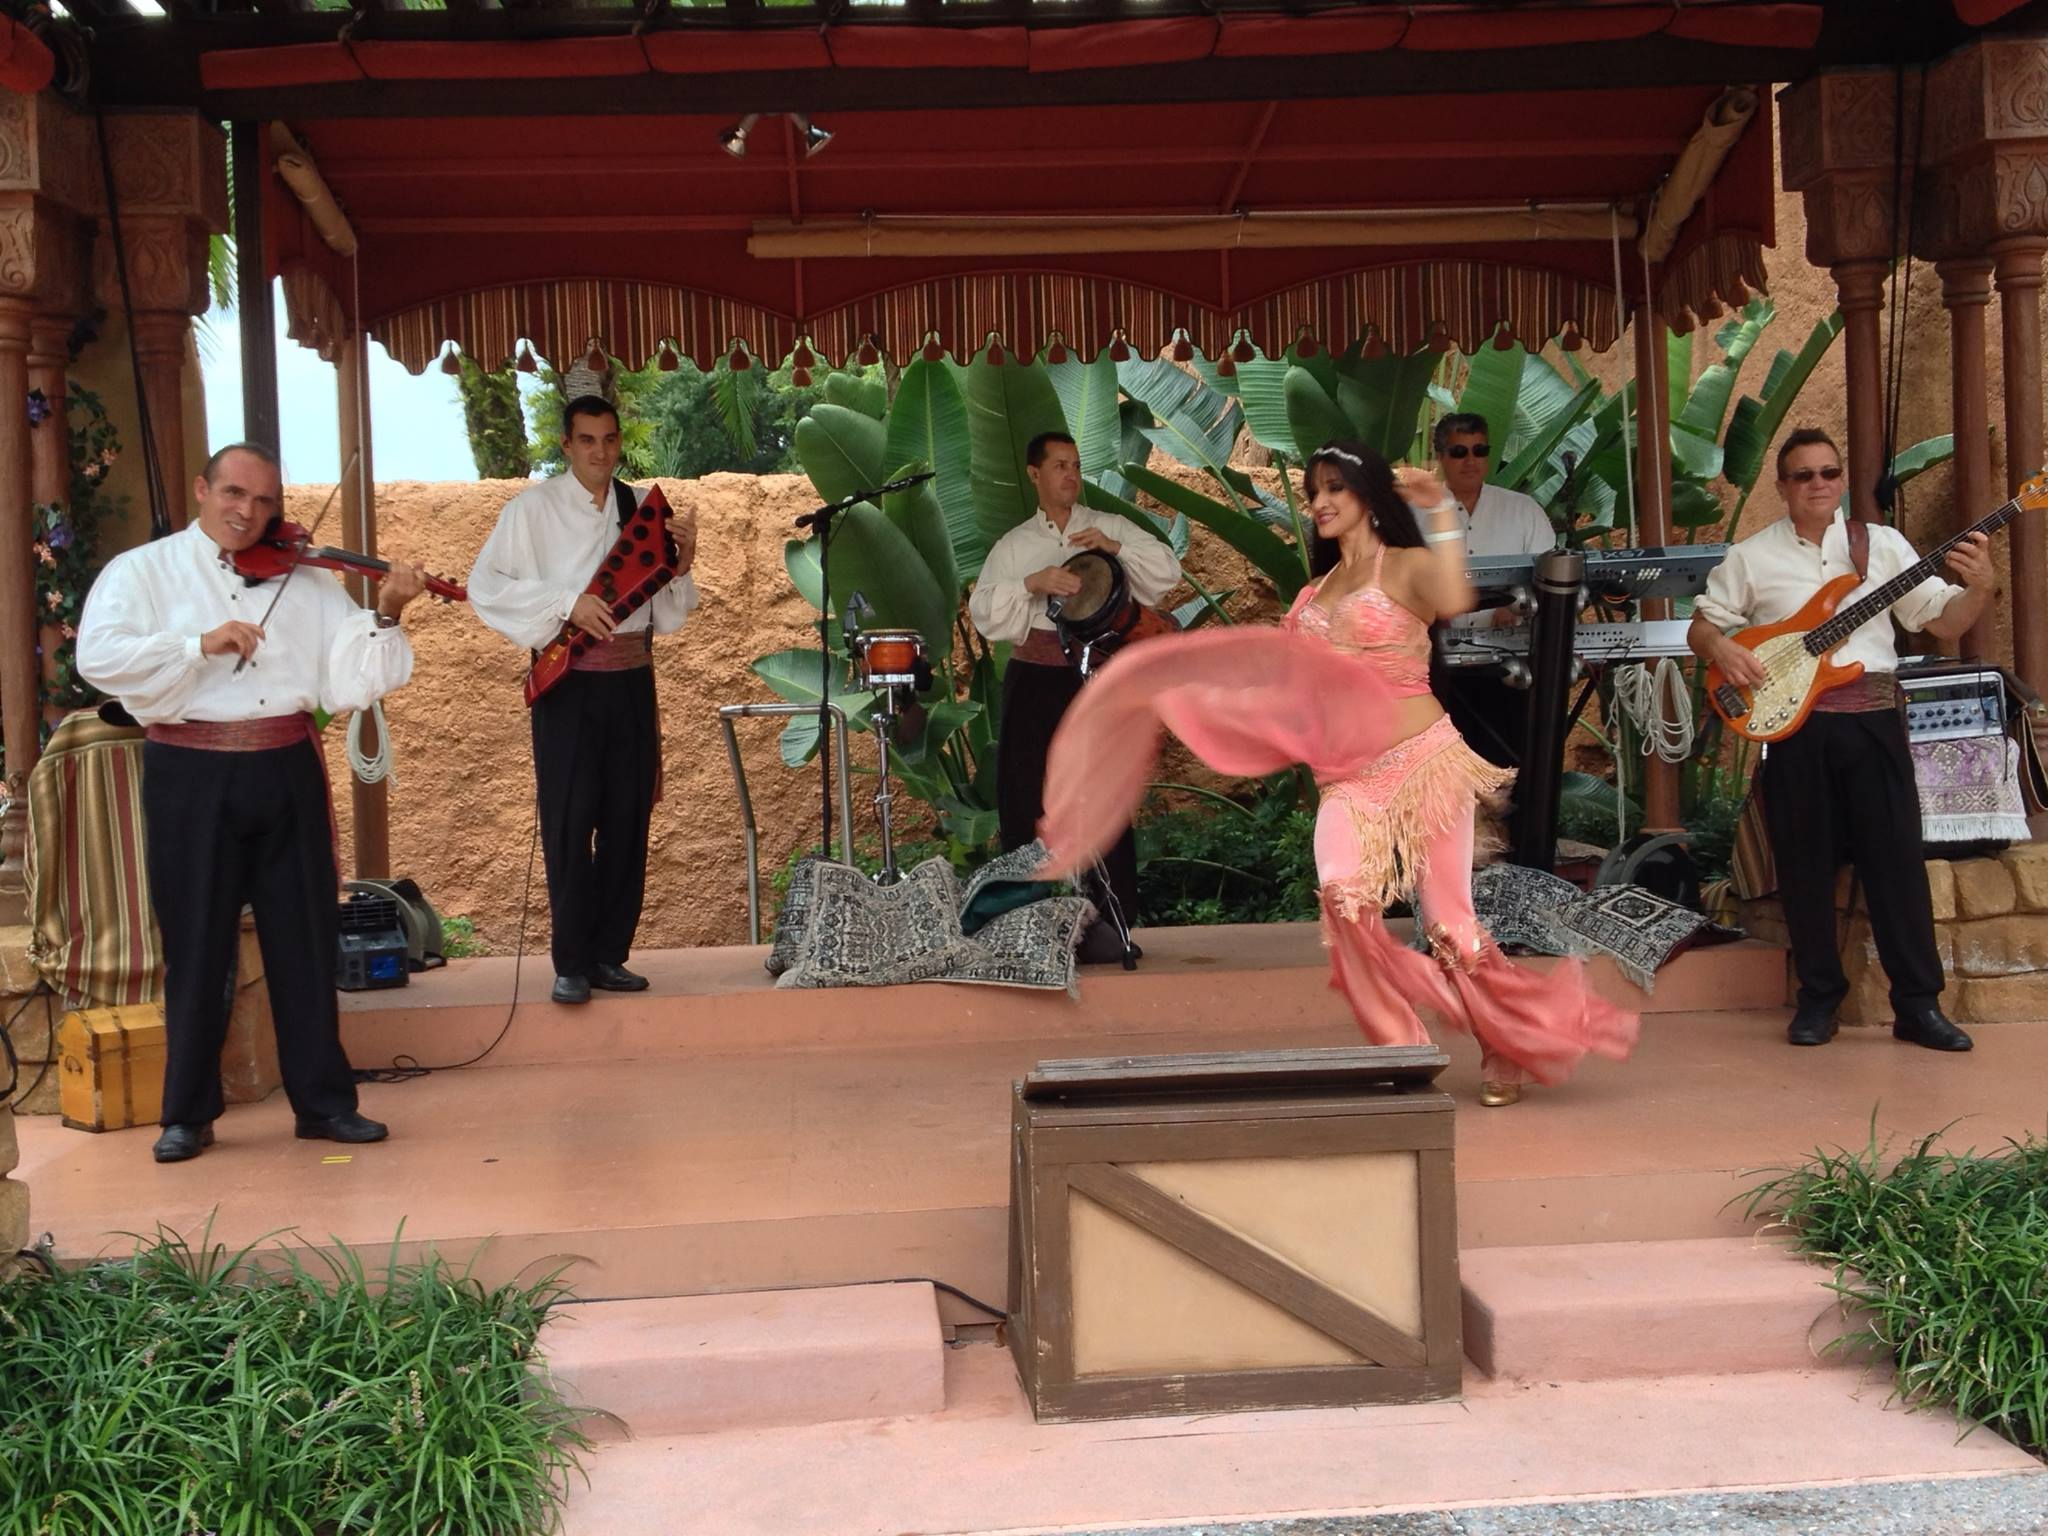 Mo'Rockin performs for one of the final times at Epcot's Morocco Pavilion - September 26th, 2014